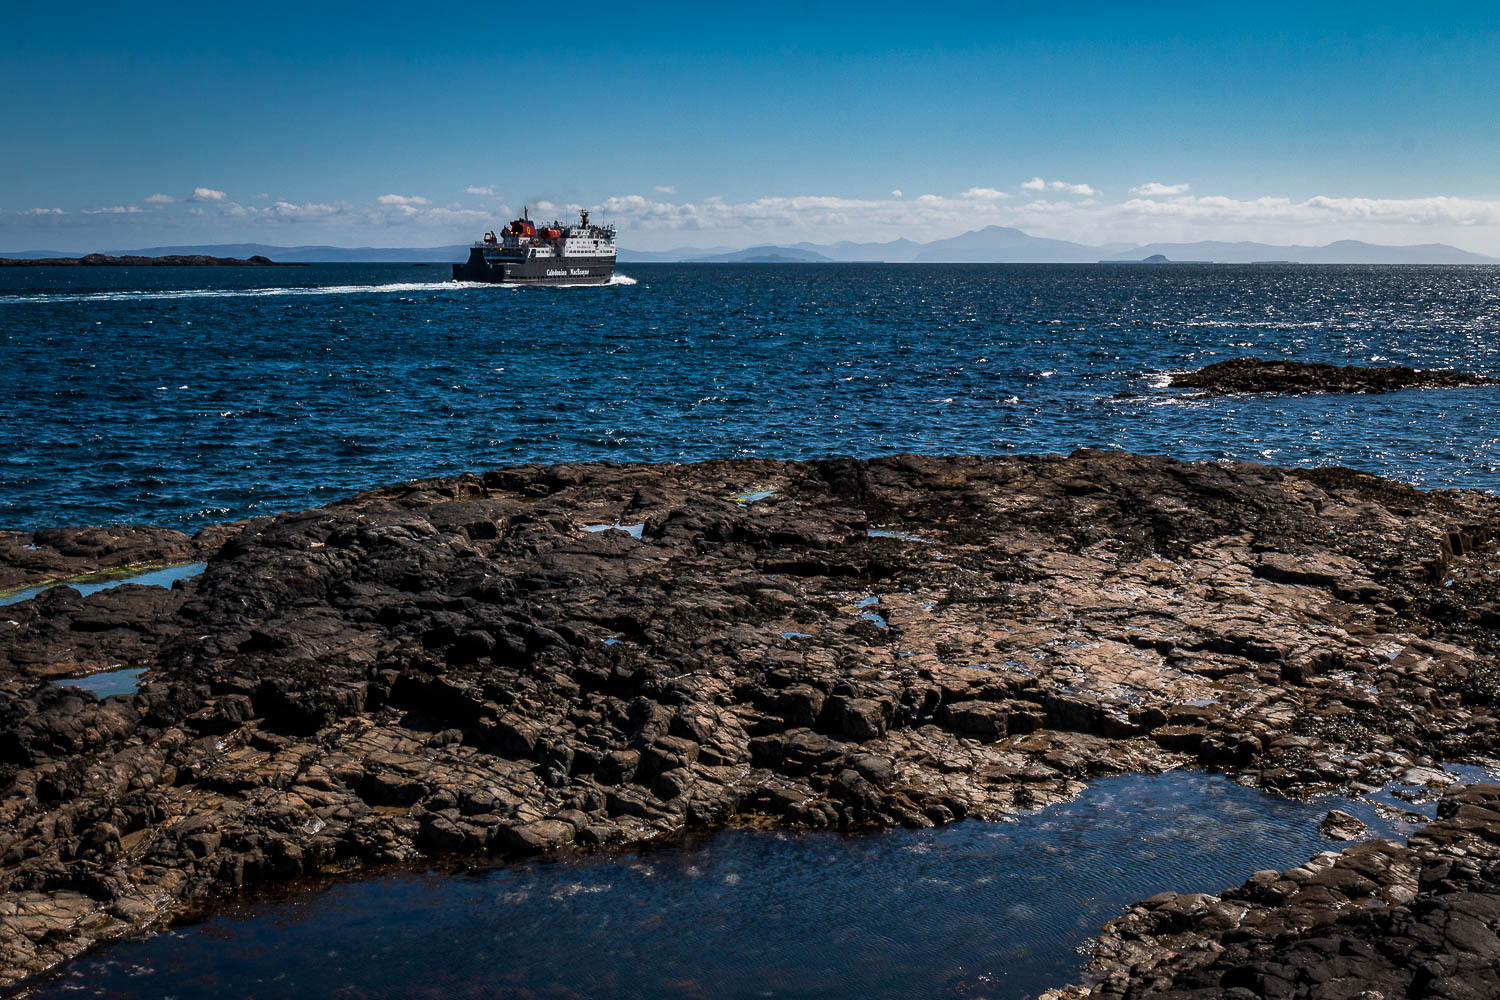 MV Clansman leaving Gott Bay with Ben More and the Dutchman's Cap on the horizon.